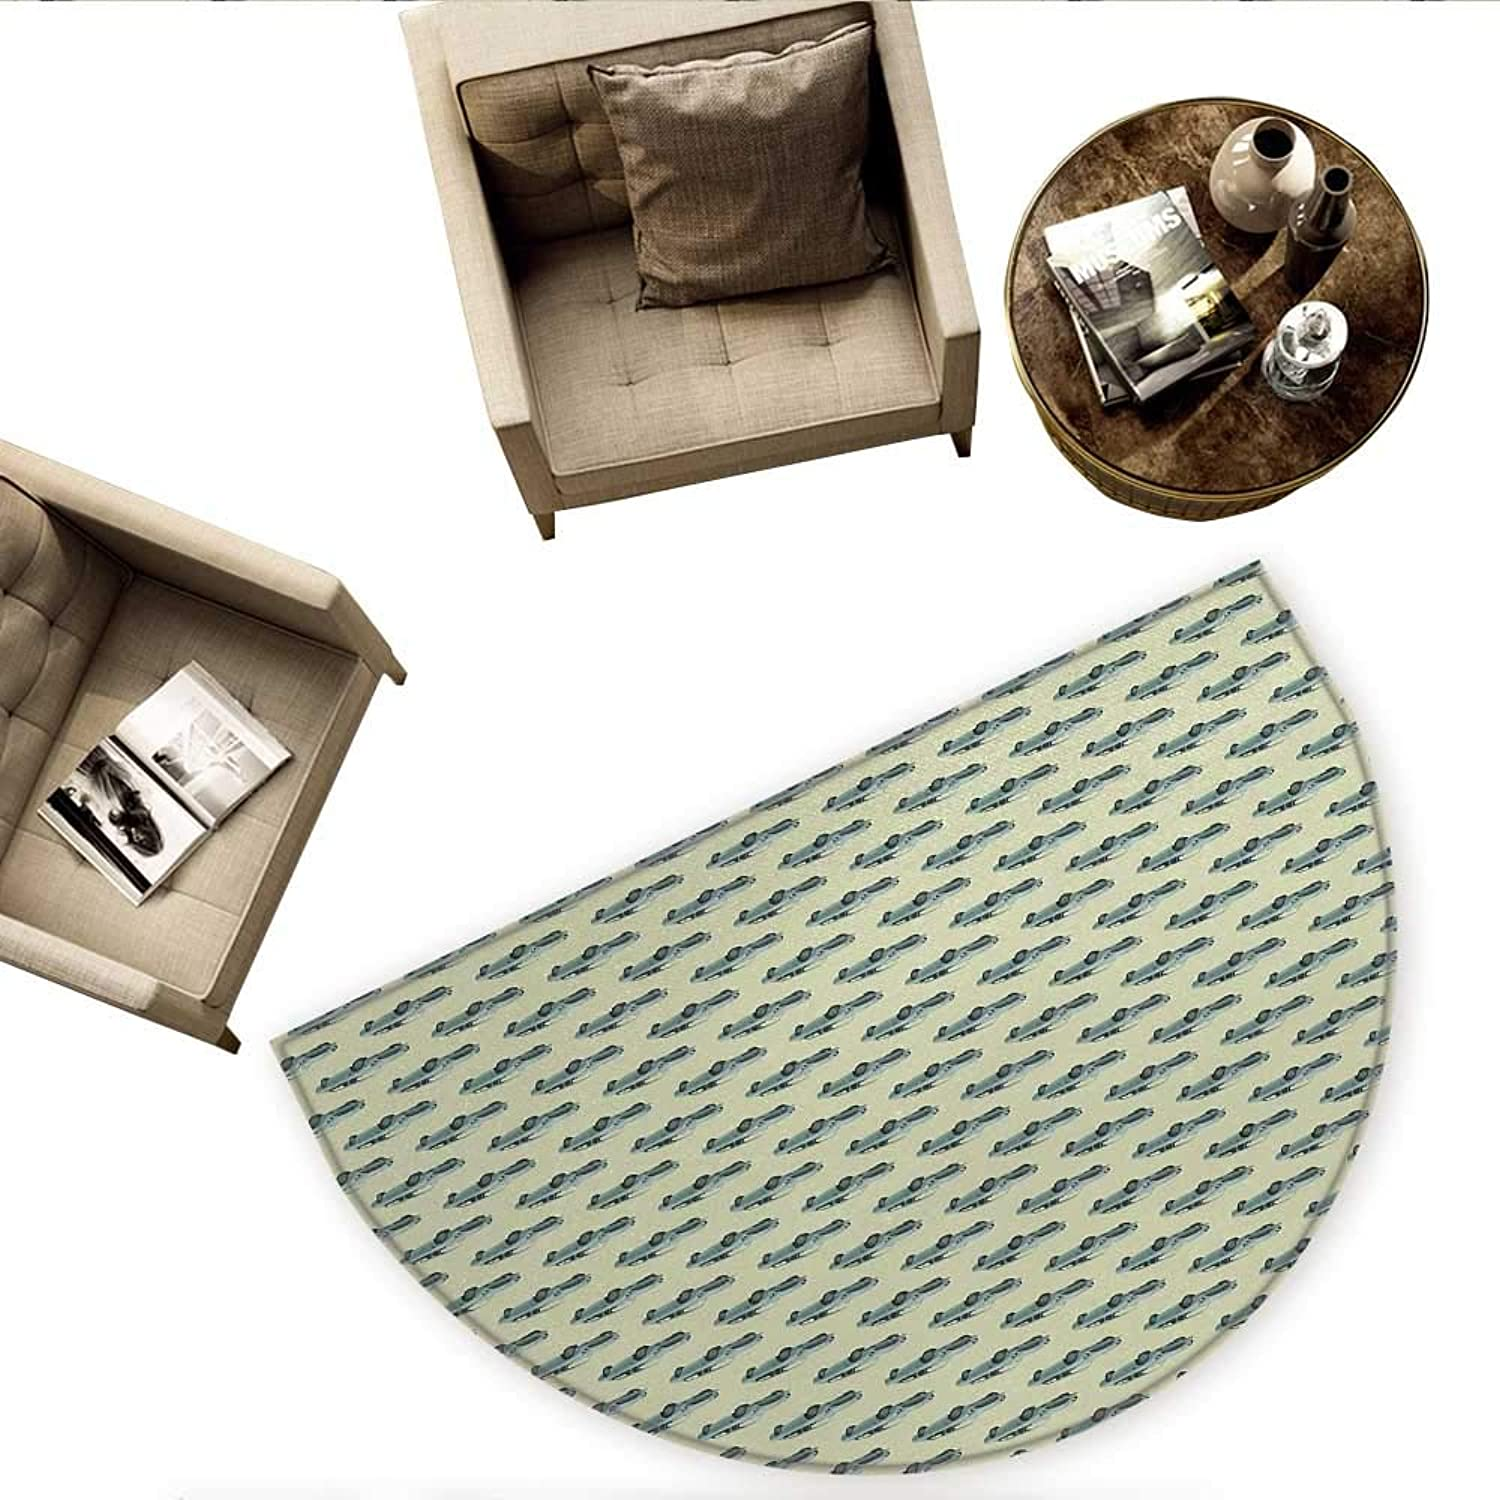 Vintage Semicircular CushionRetro Sports Car Pattern with Classic Vehicle on a Pastel Background Entry Door Mat H 66.9  xD 100.4  Slate bluee and Pale Green